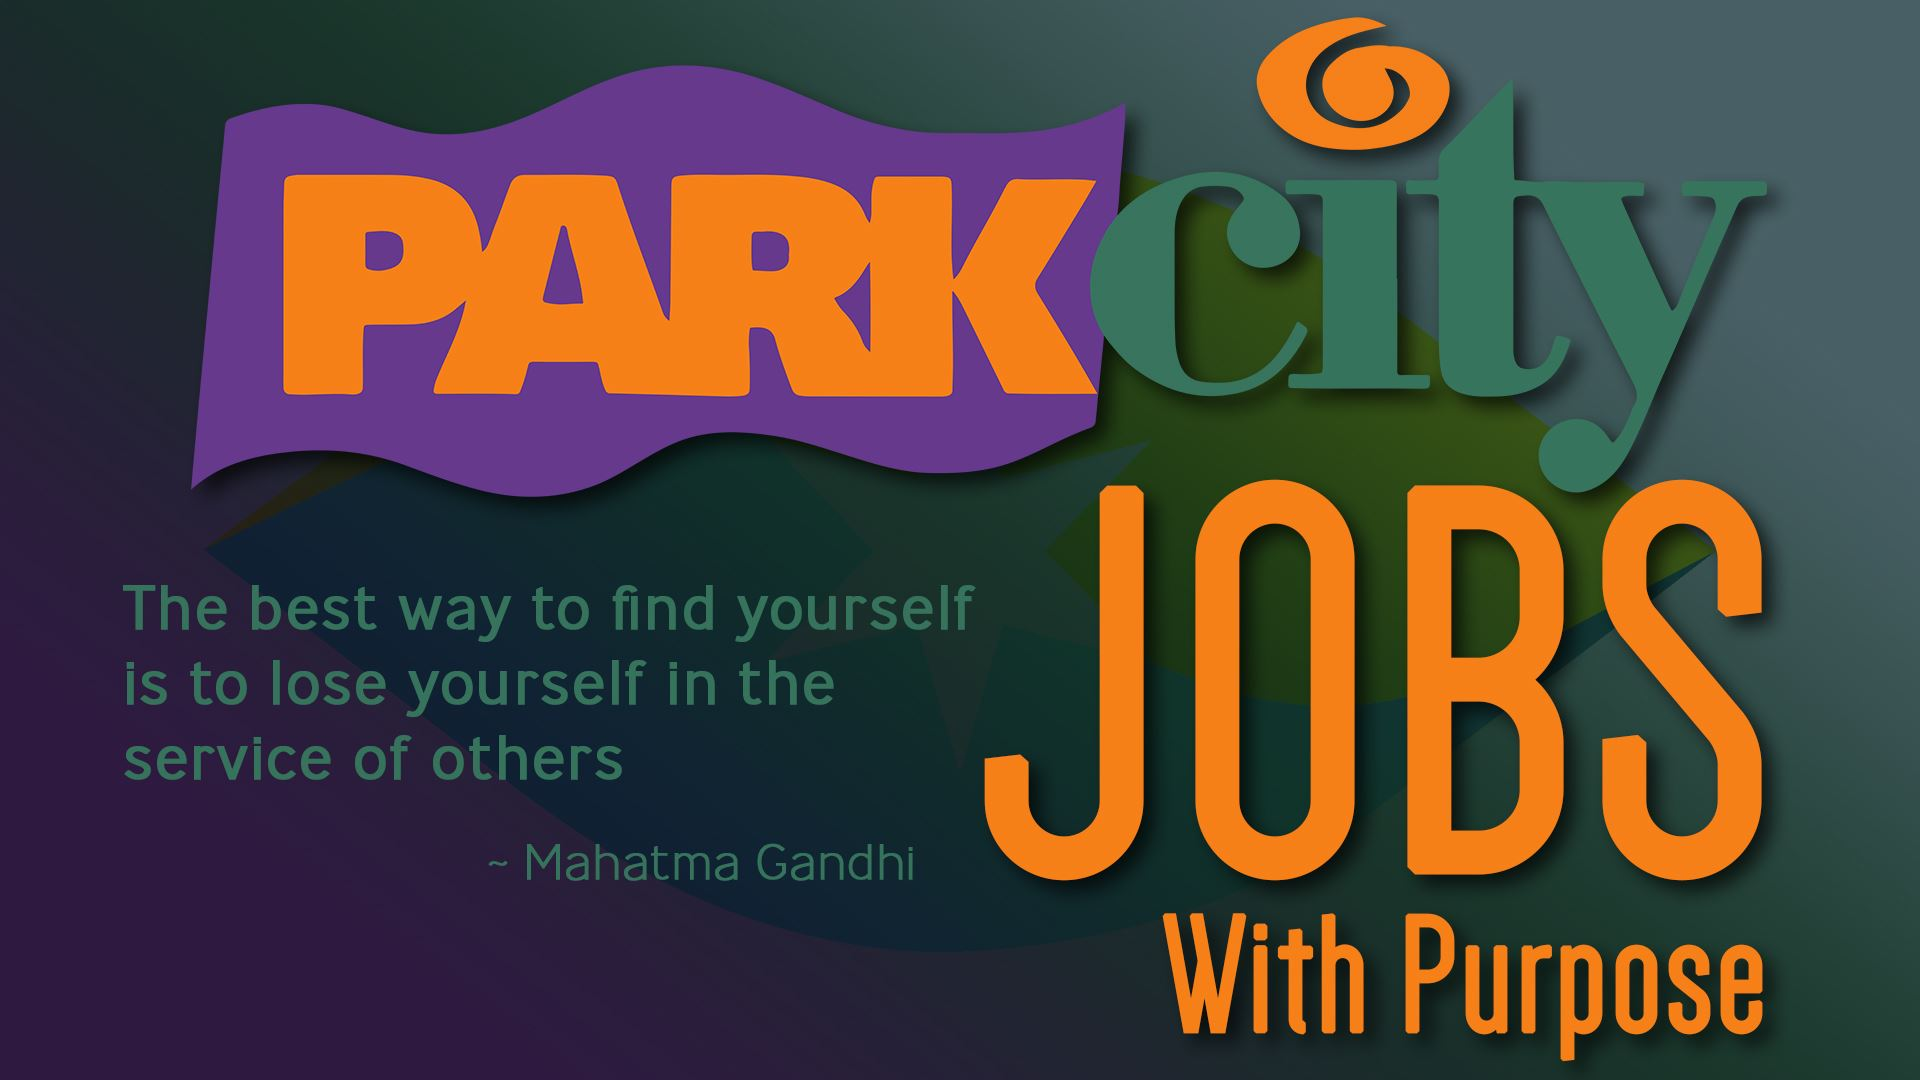 Park City Jobs flyer with a quote by Ghandi